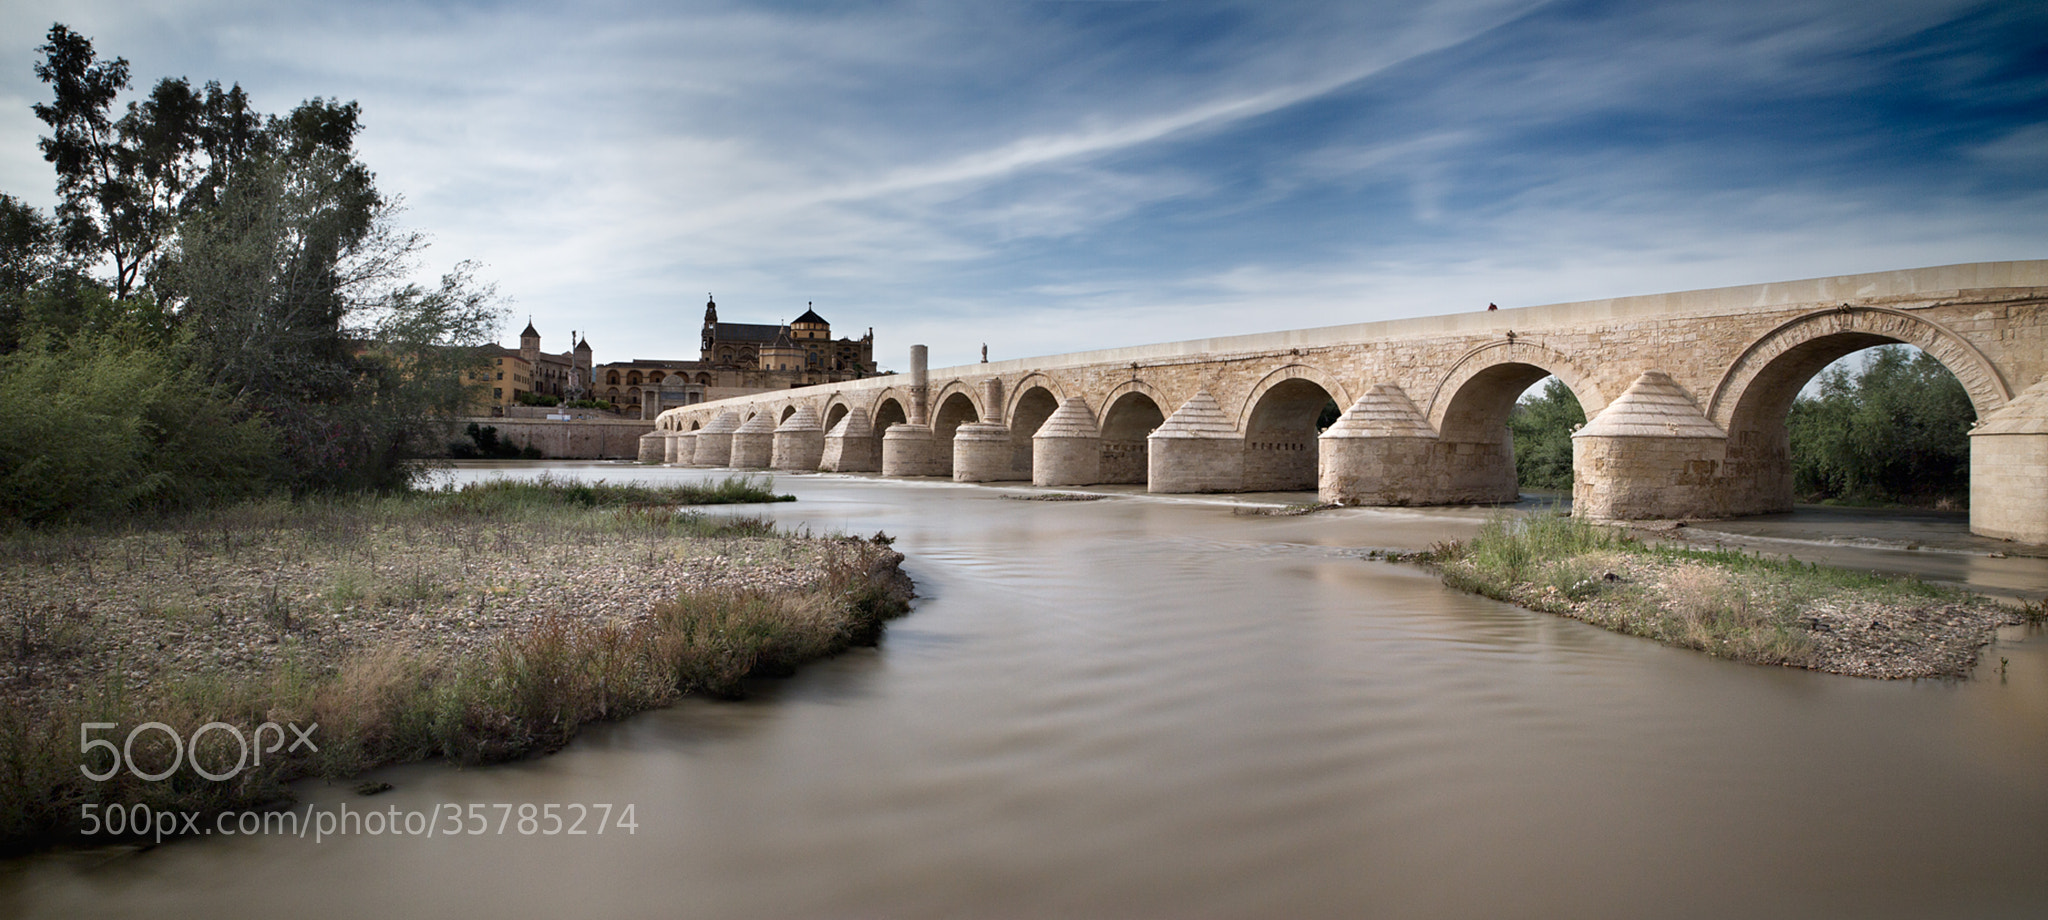 Photograph Roman Bridge by José Antonio Sánchez on 500px